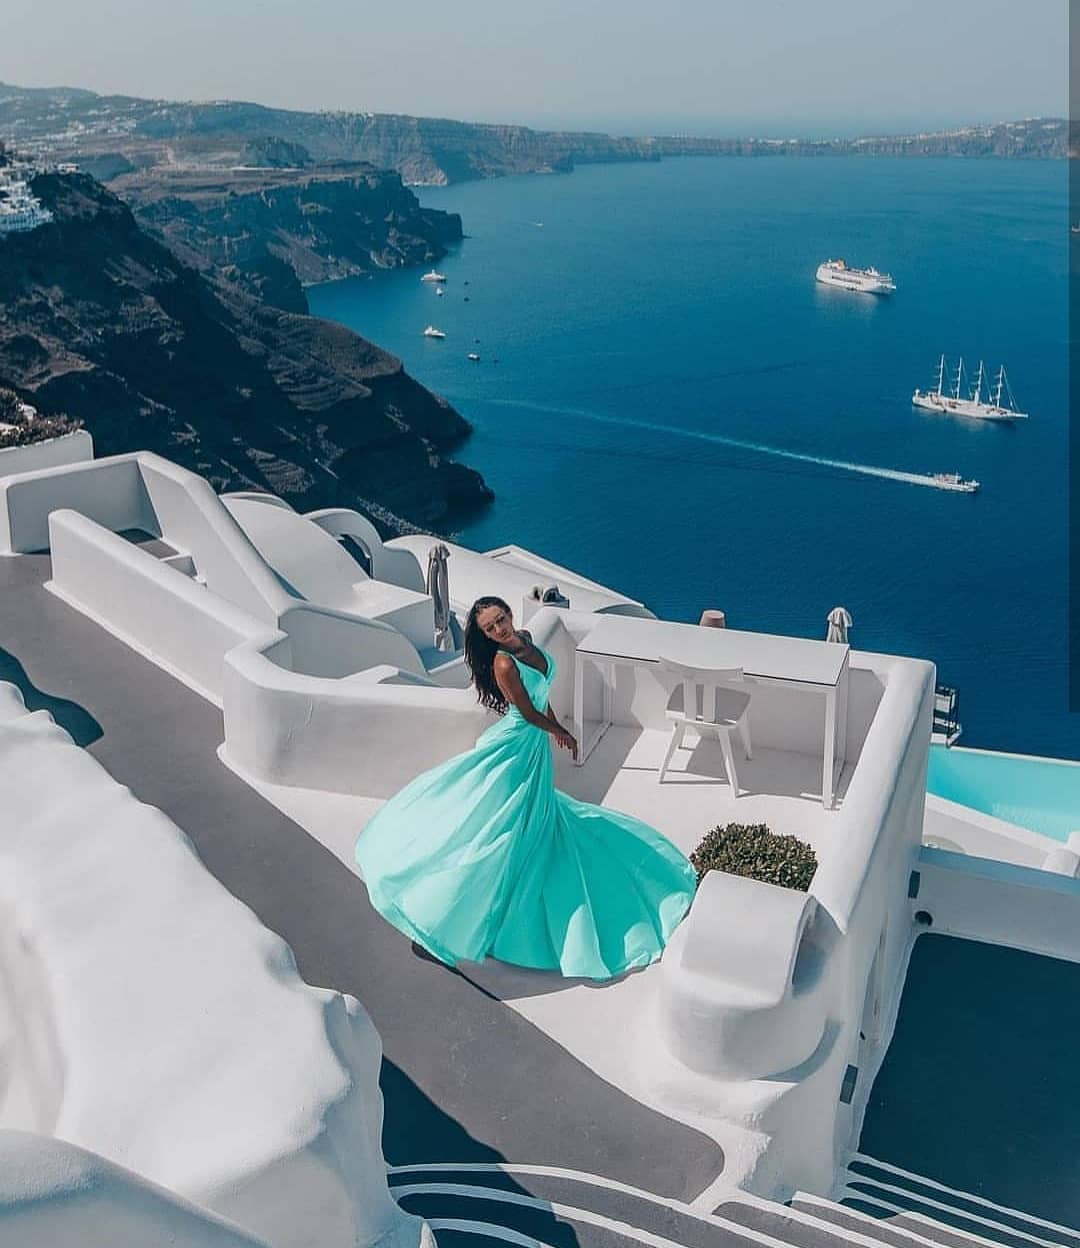 Neon Turquoise Maxi Gown For Santorini Trip 2021